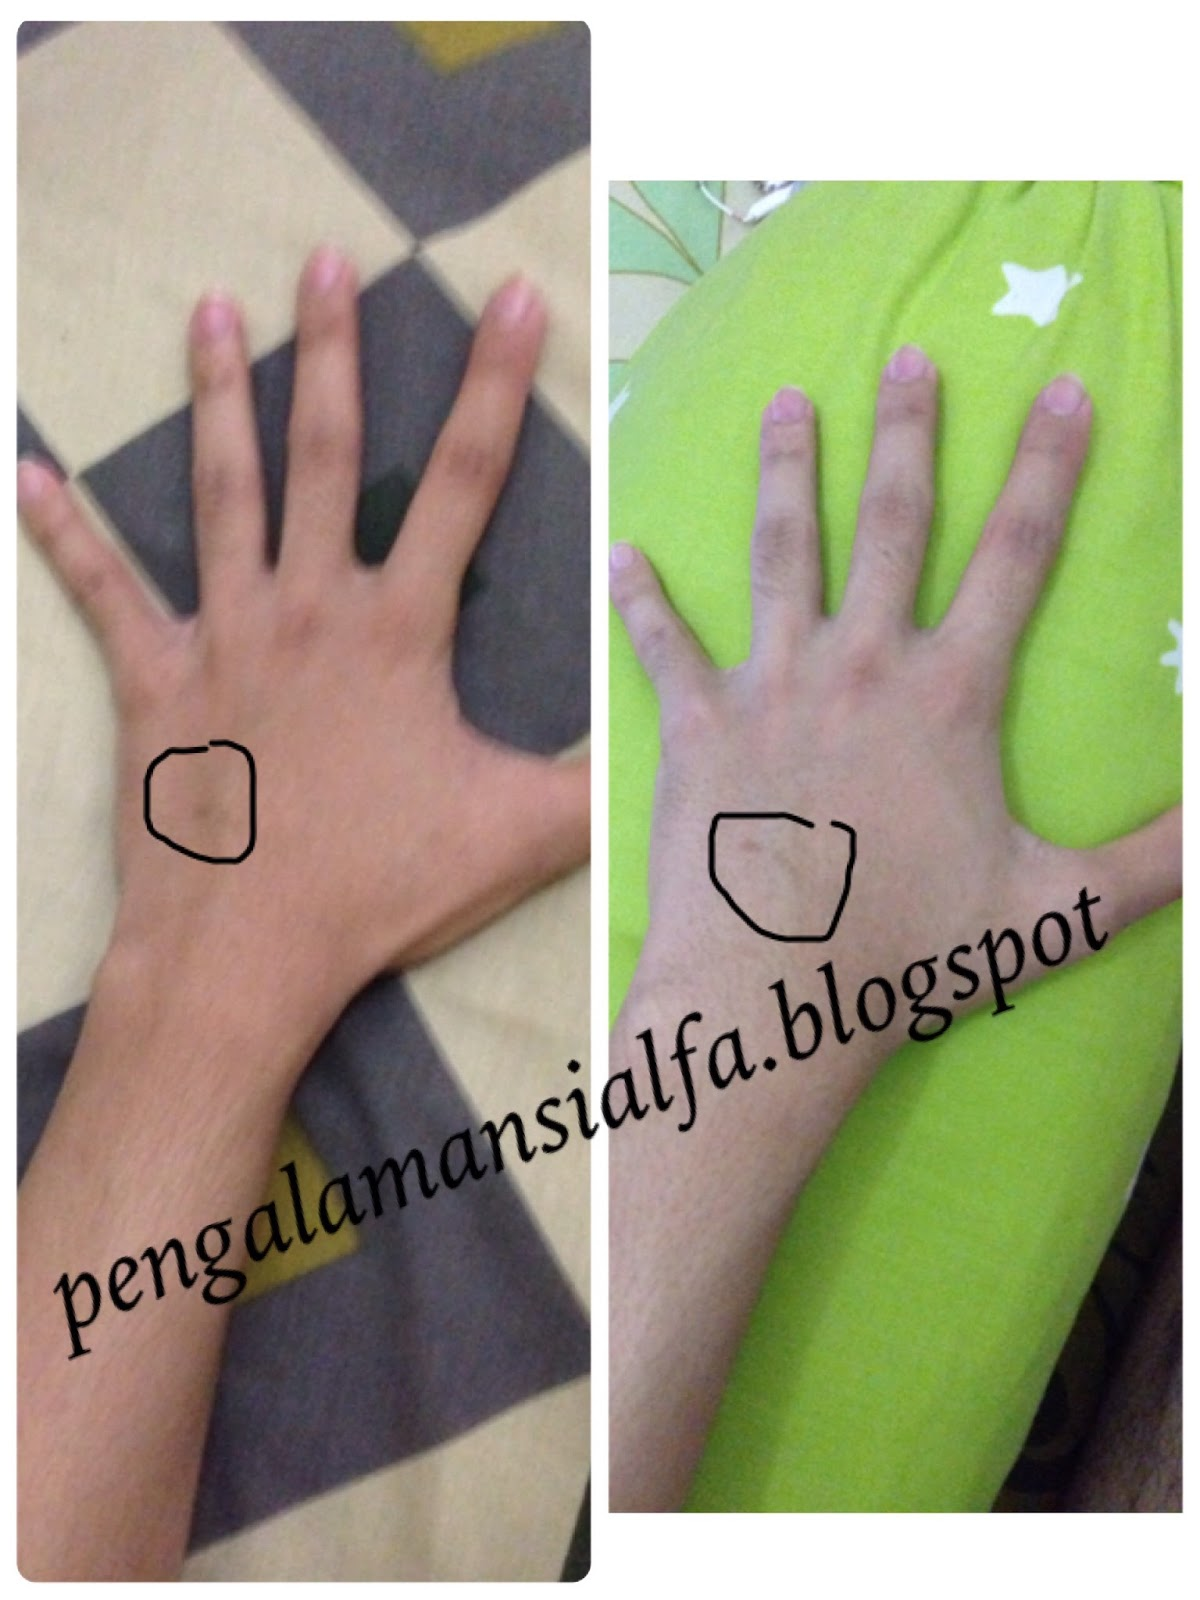 REVIEW GLUTA PANCEA TERBARU NEW PANACEA INDONESIA